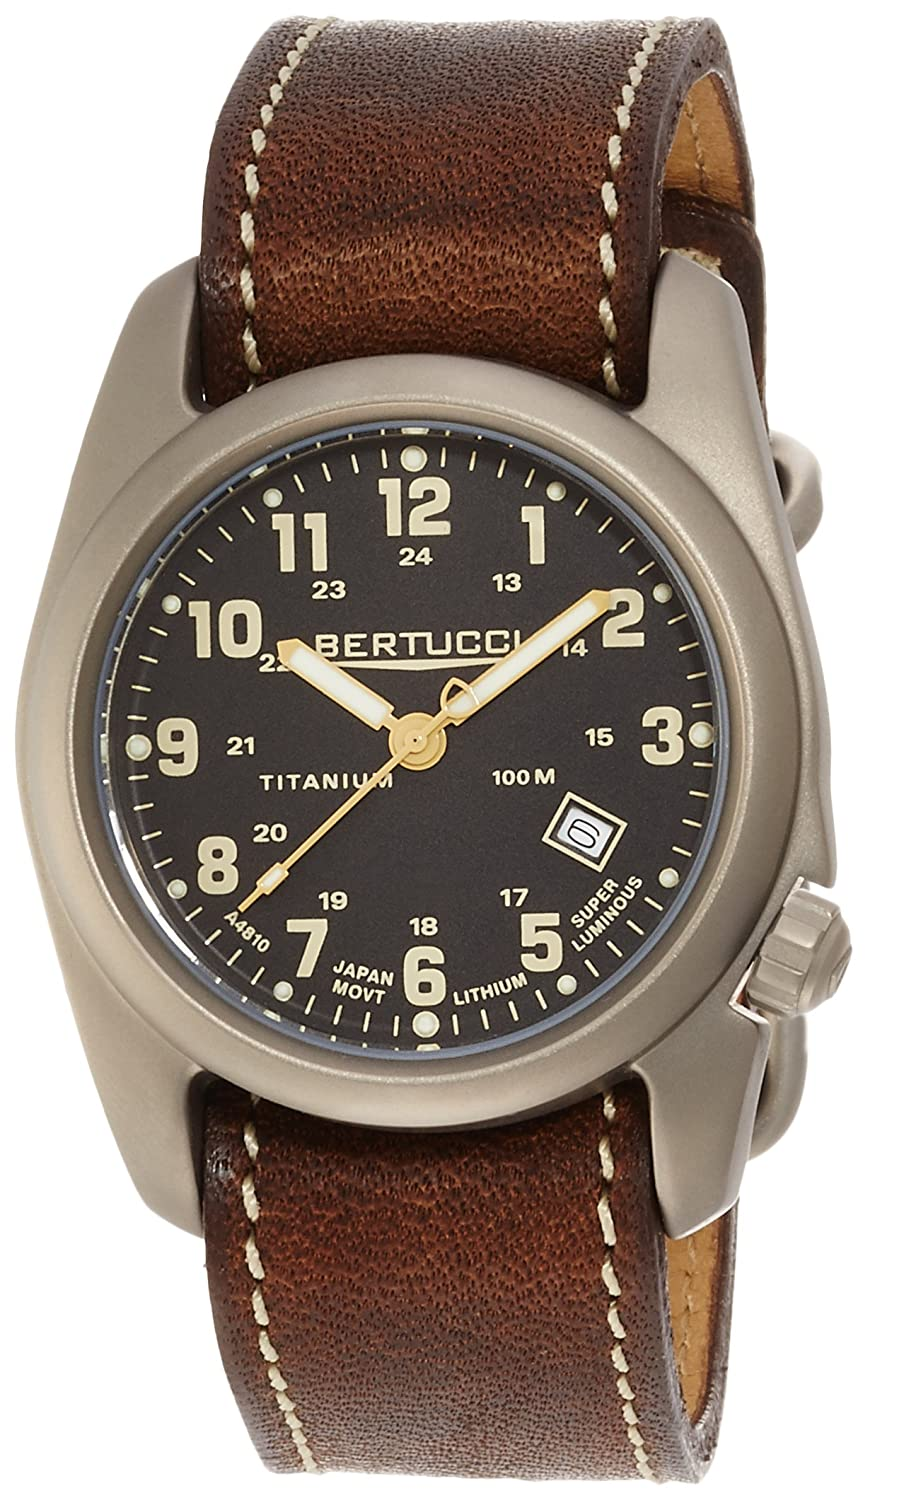 Bertucci A-2T Classic Field Watch Black Ti-Horween Brown Band 12712